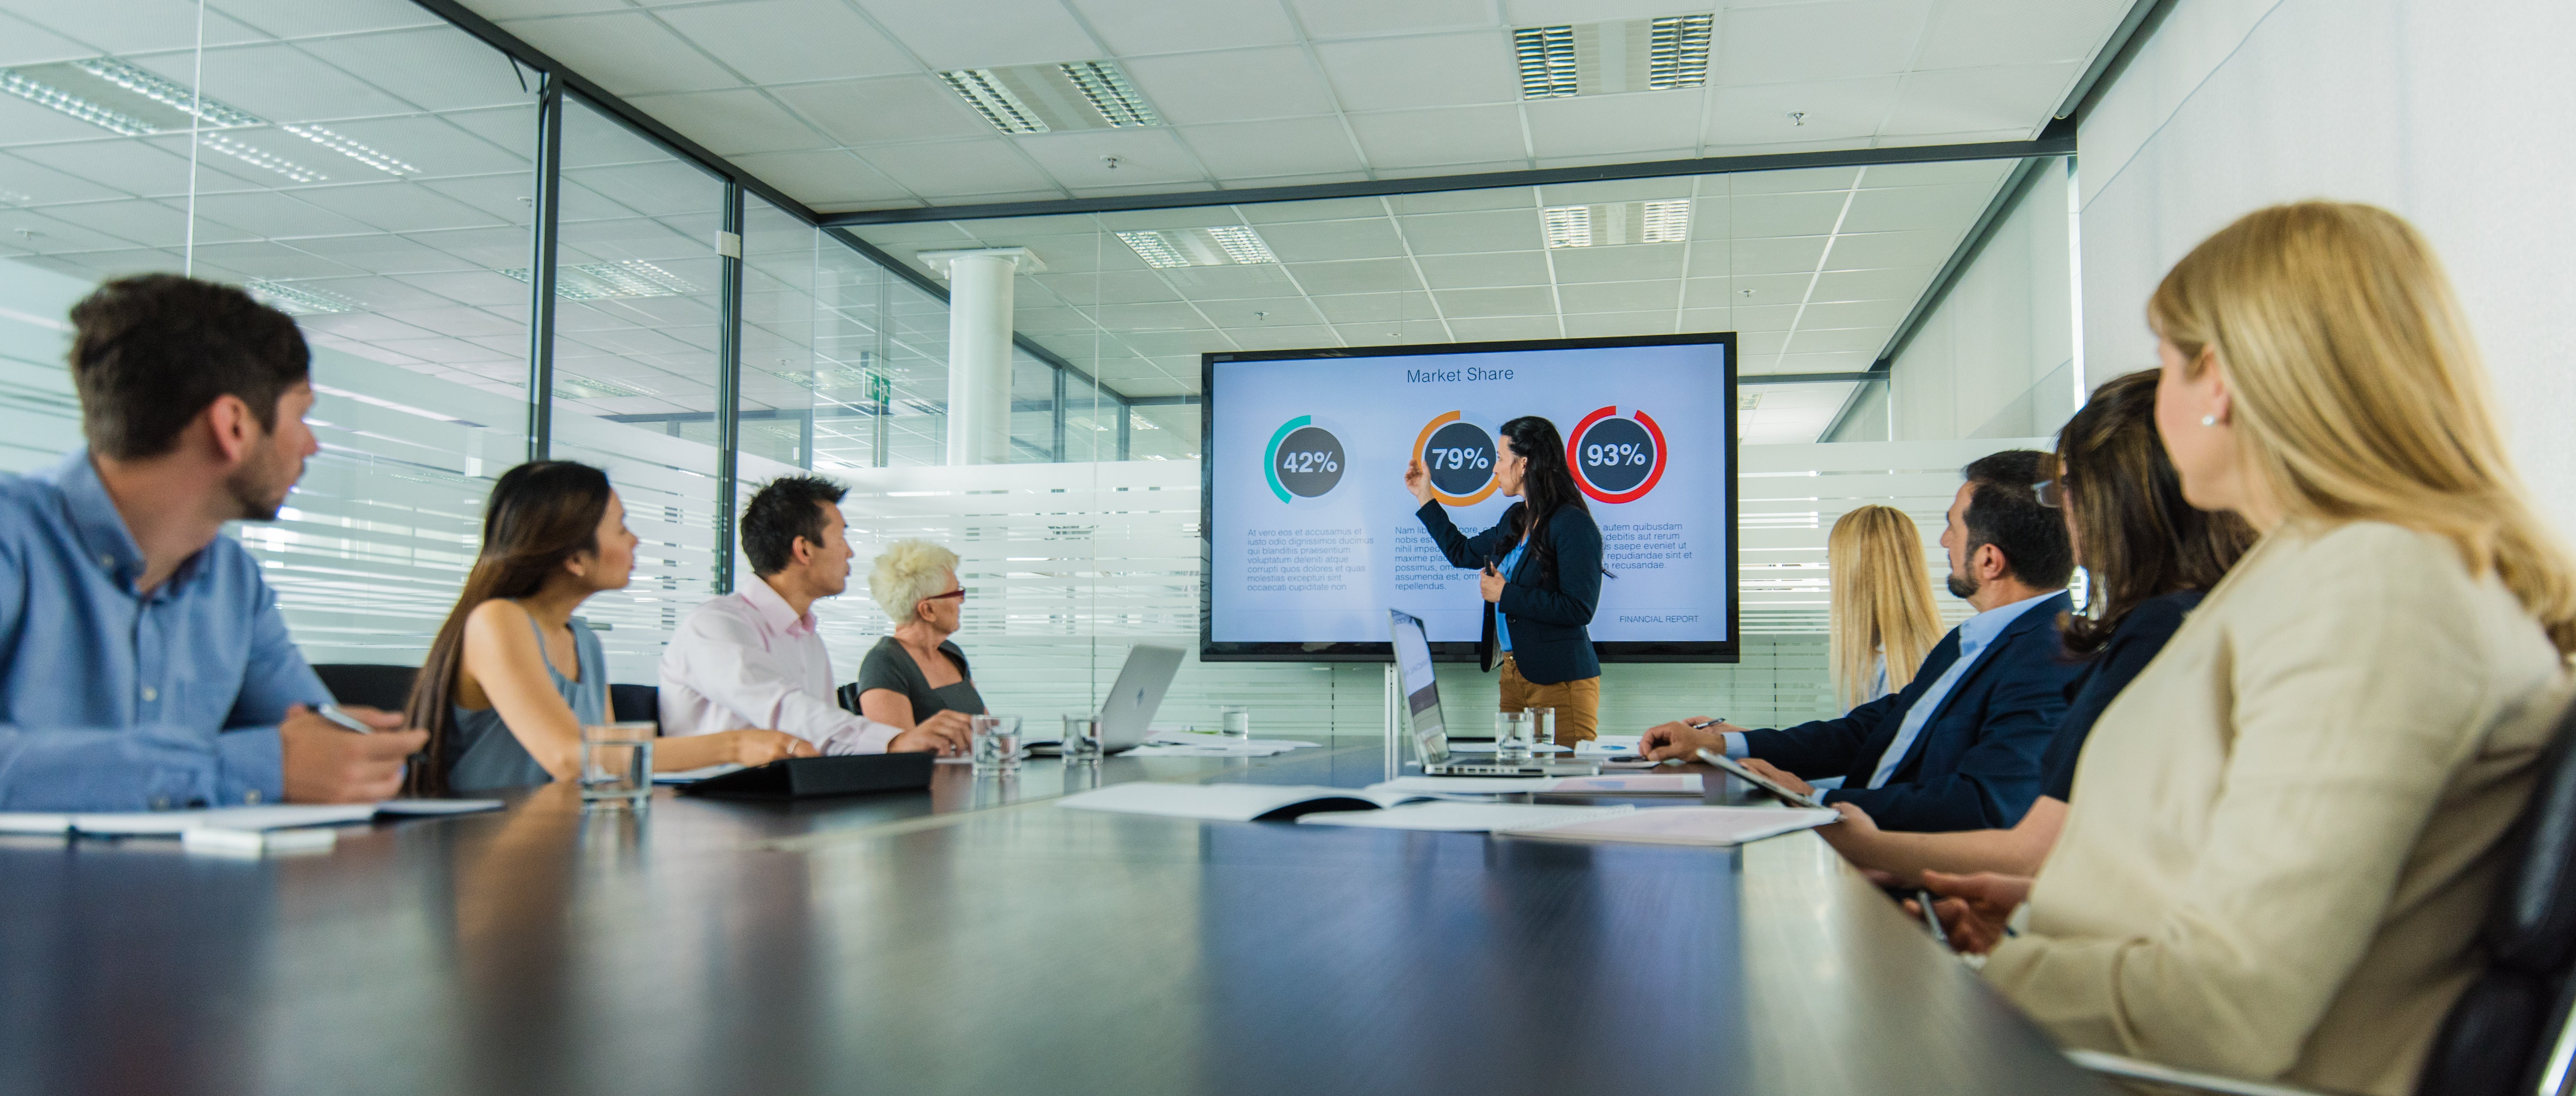 4 Reasons Marketing as a Service (MaaS) Should Be in Every CMO's 2020 Budget